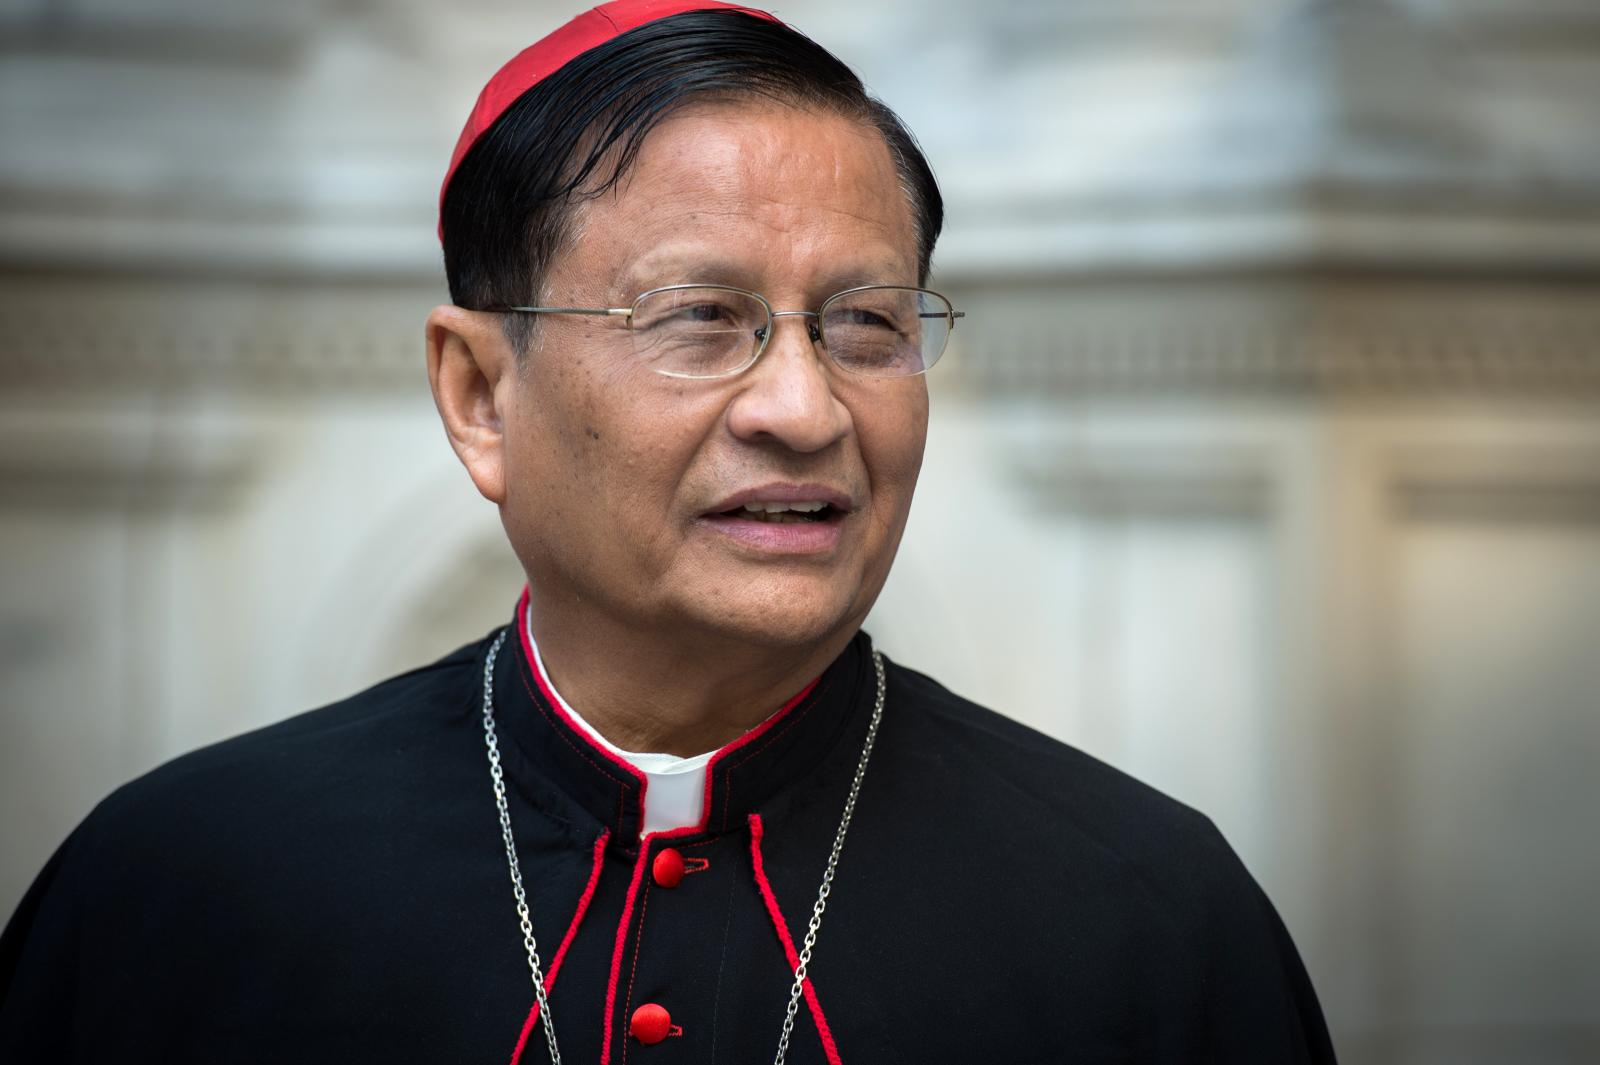 Cardinal Bo calls for 'fasting from anger' - Diocese of Westminster